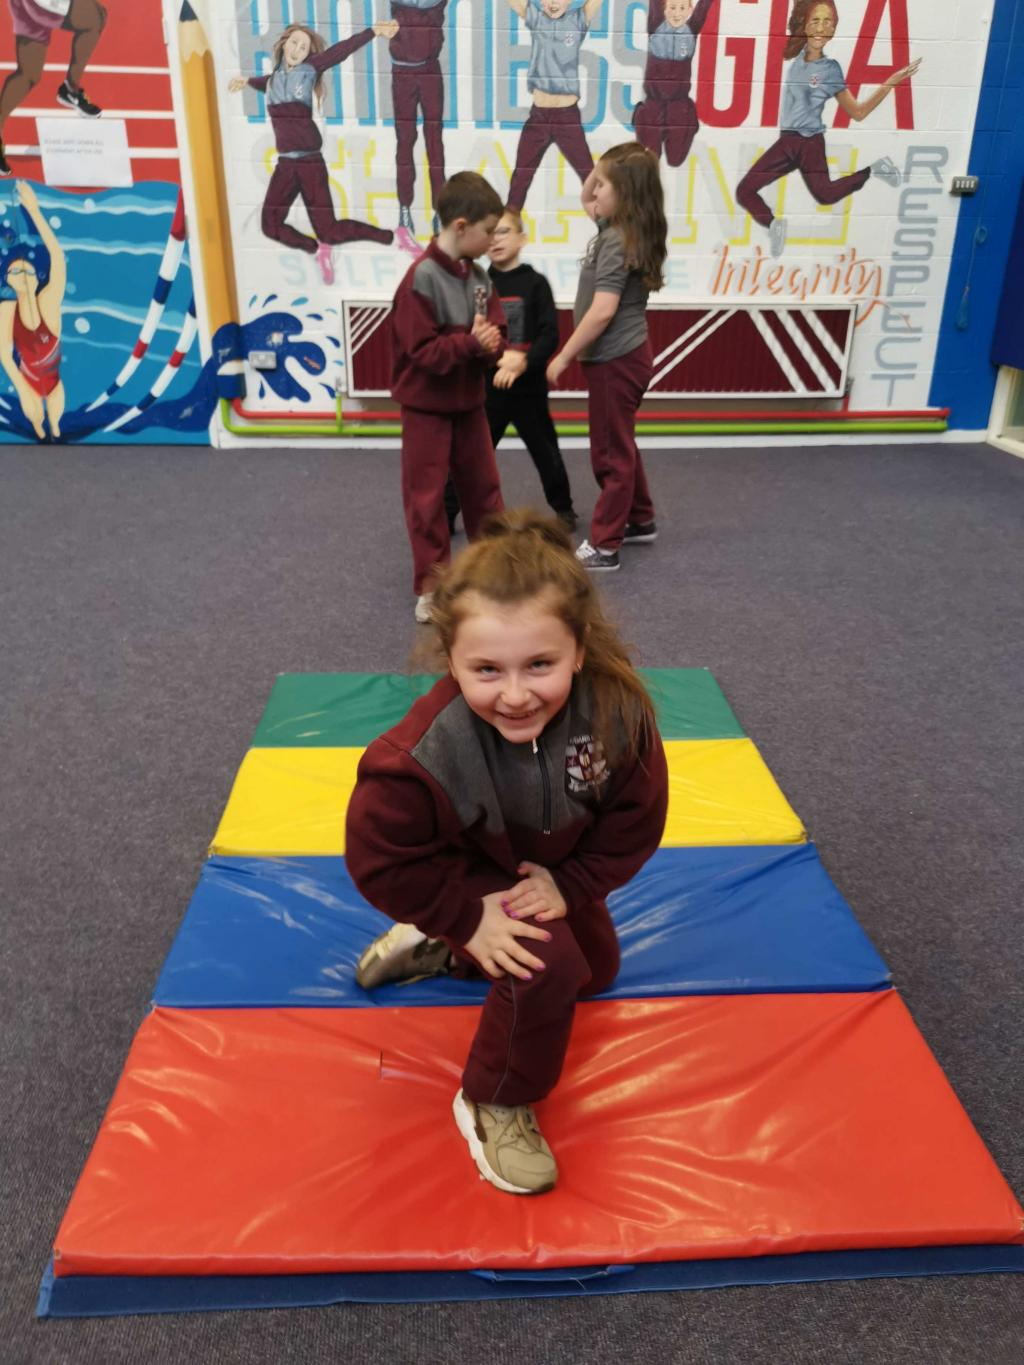 Action shots from Gymnastics in Ms. Geraghty's class!